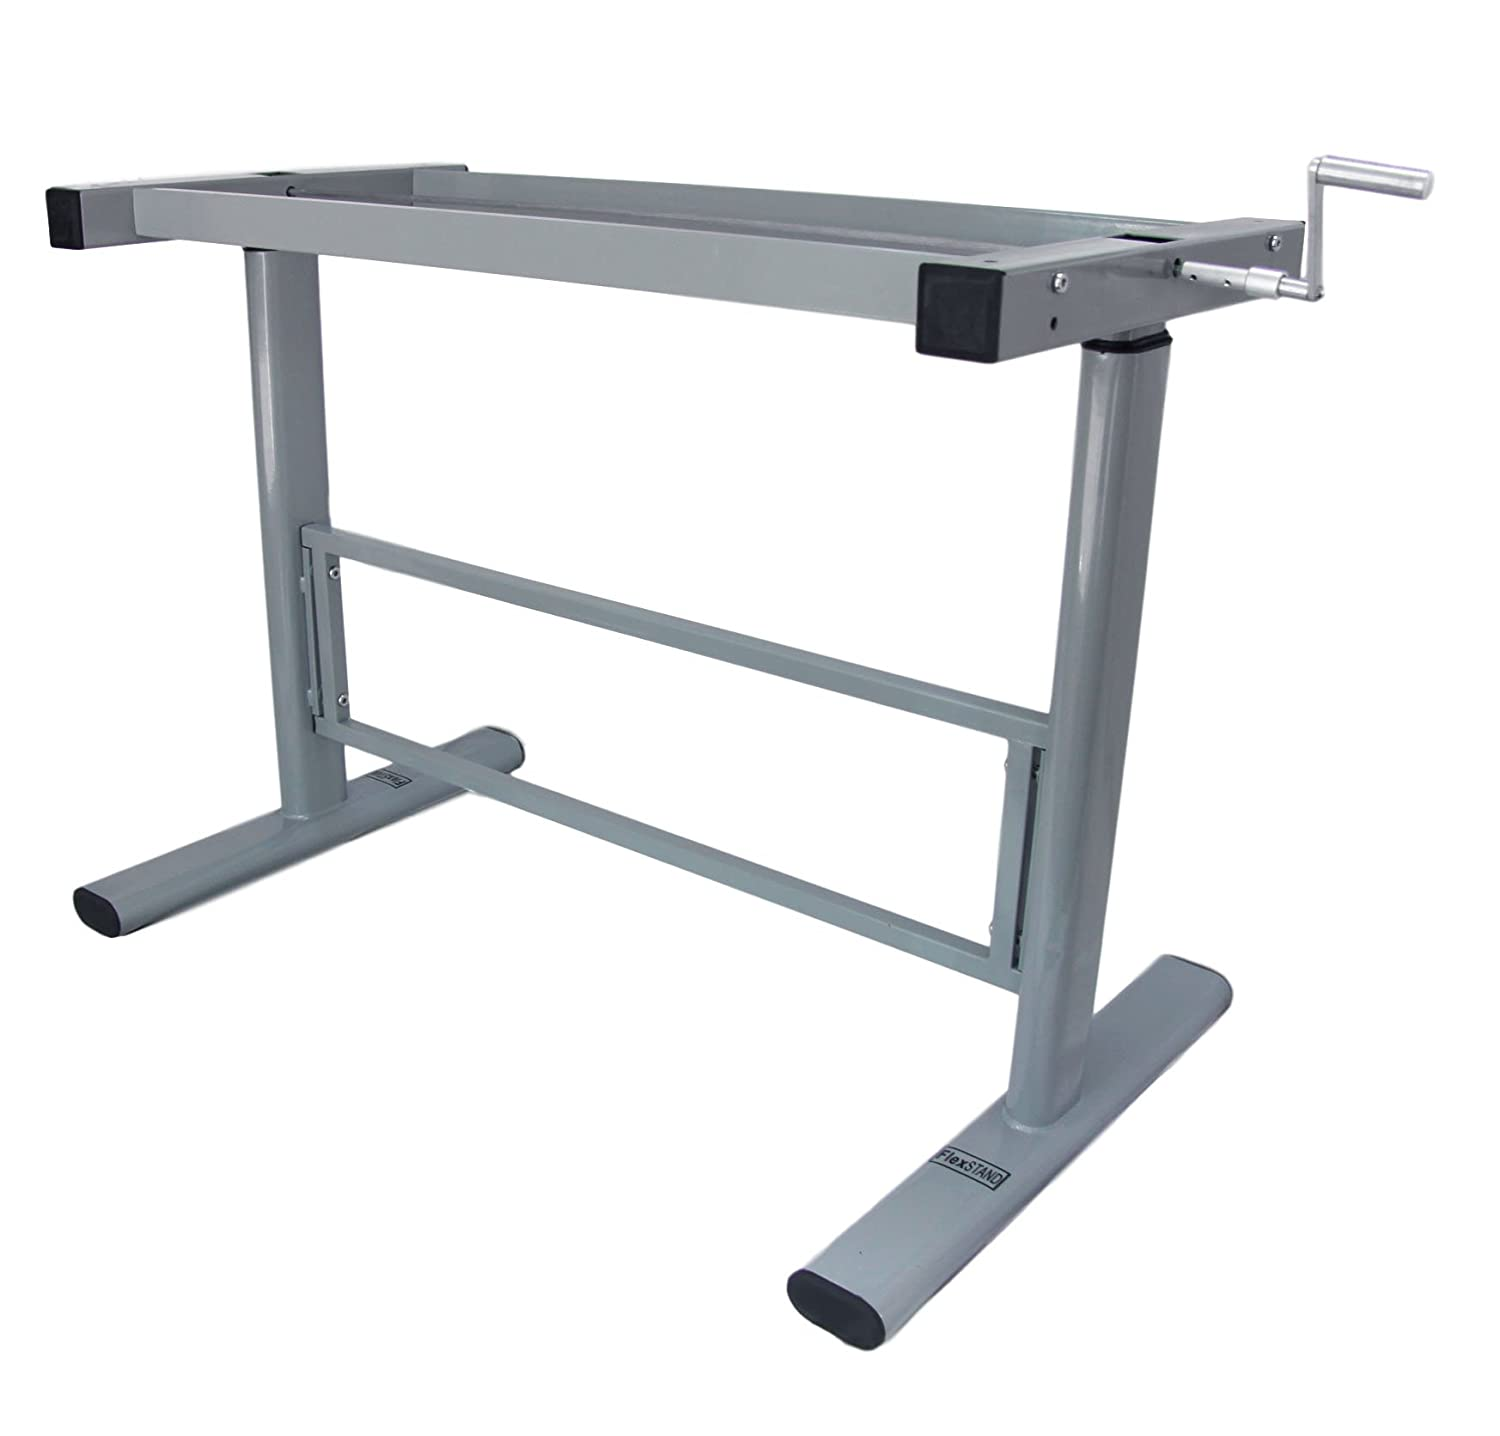 up office computer desk of and base size adjustable large sit workstation best ergonomic table affordable full movable height legs stand standing convertible